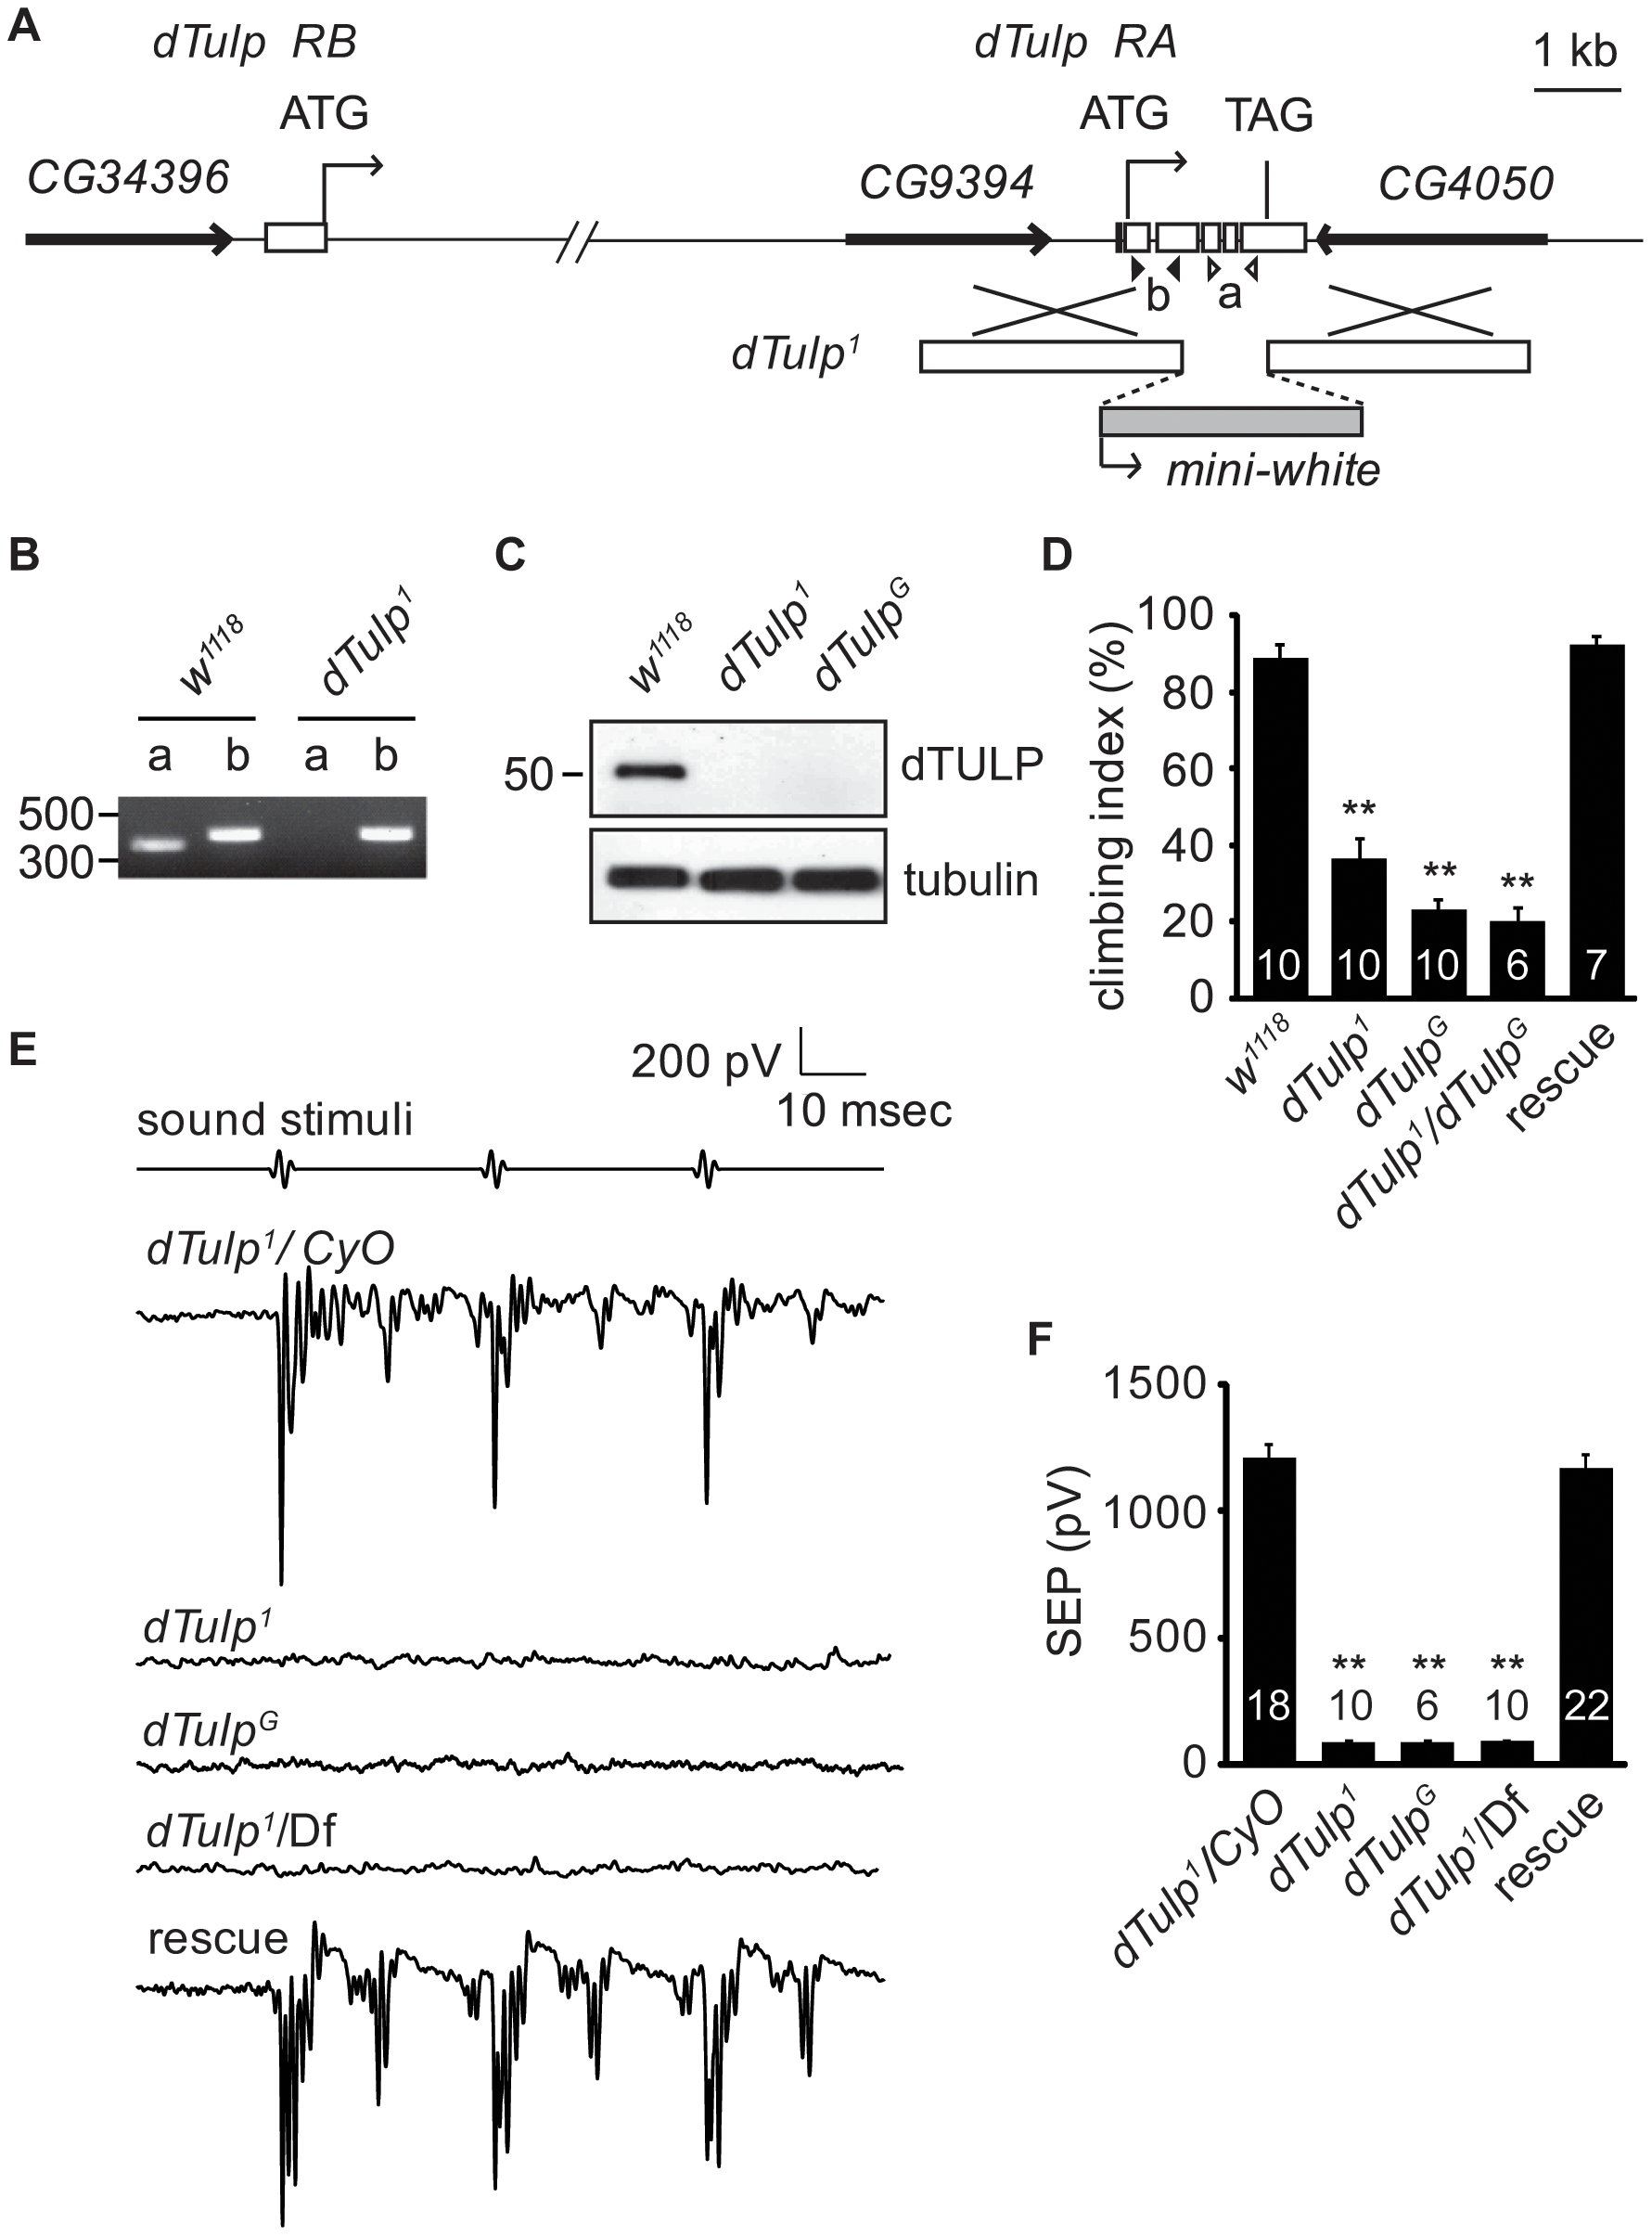 Hearing loss in the <i>dTulp</i> mutant.